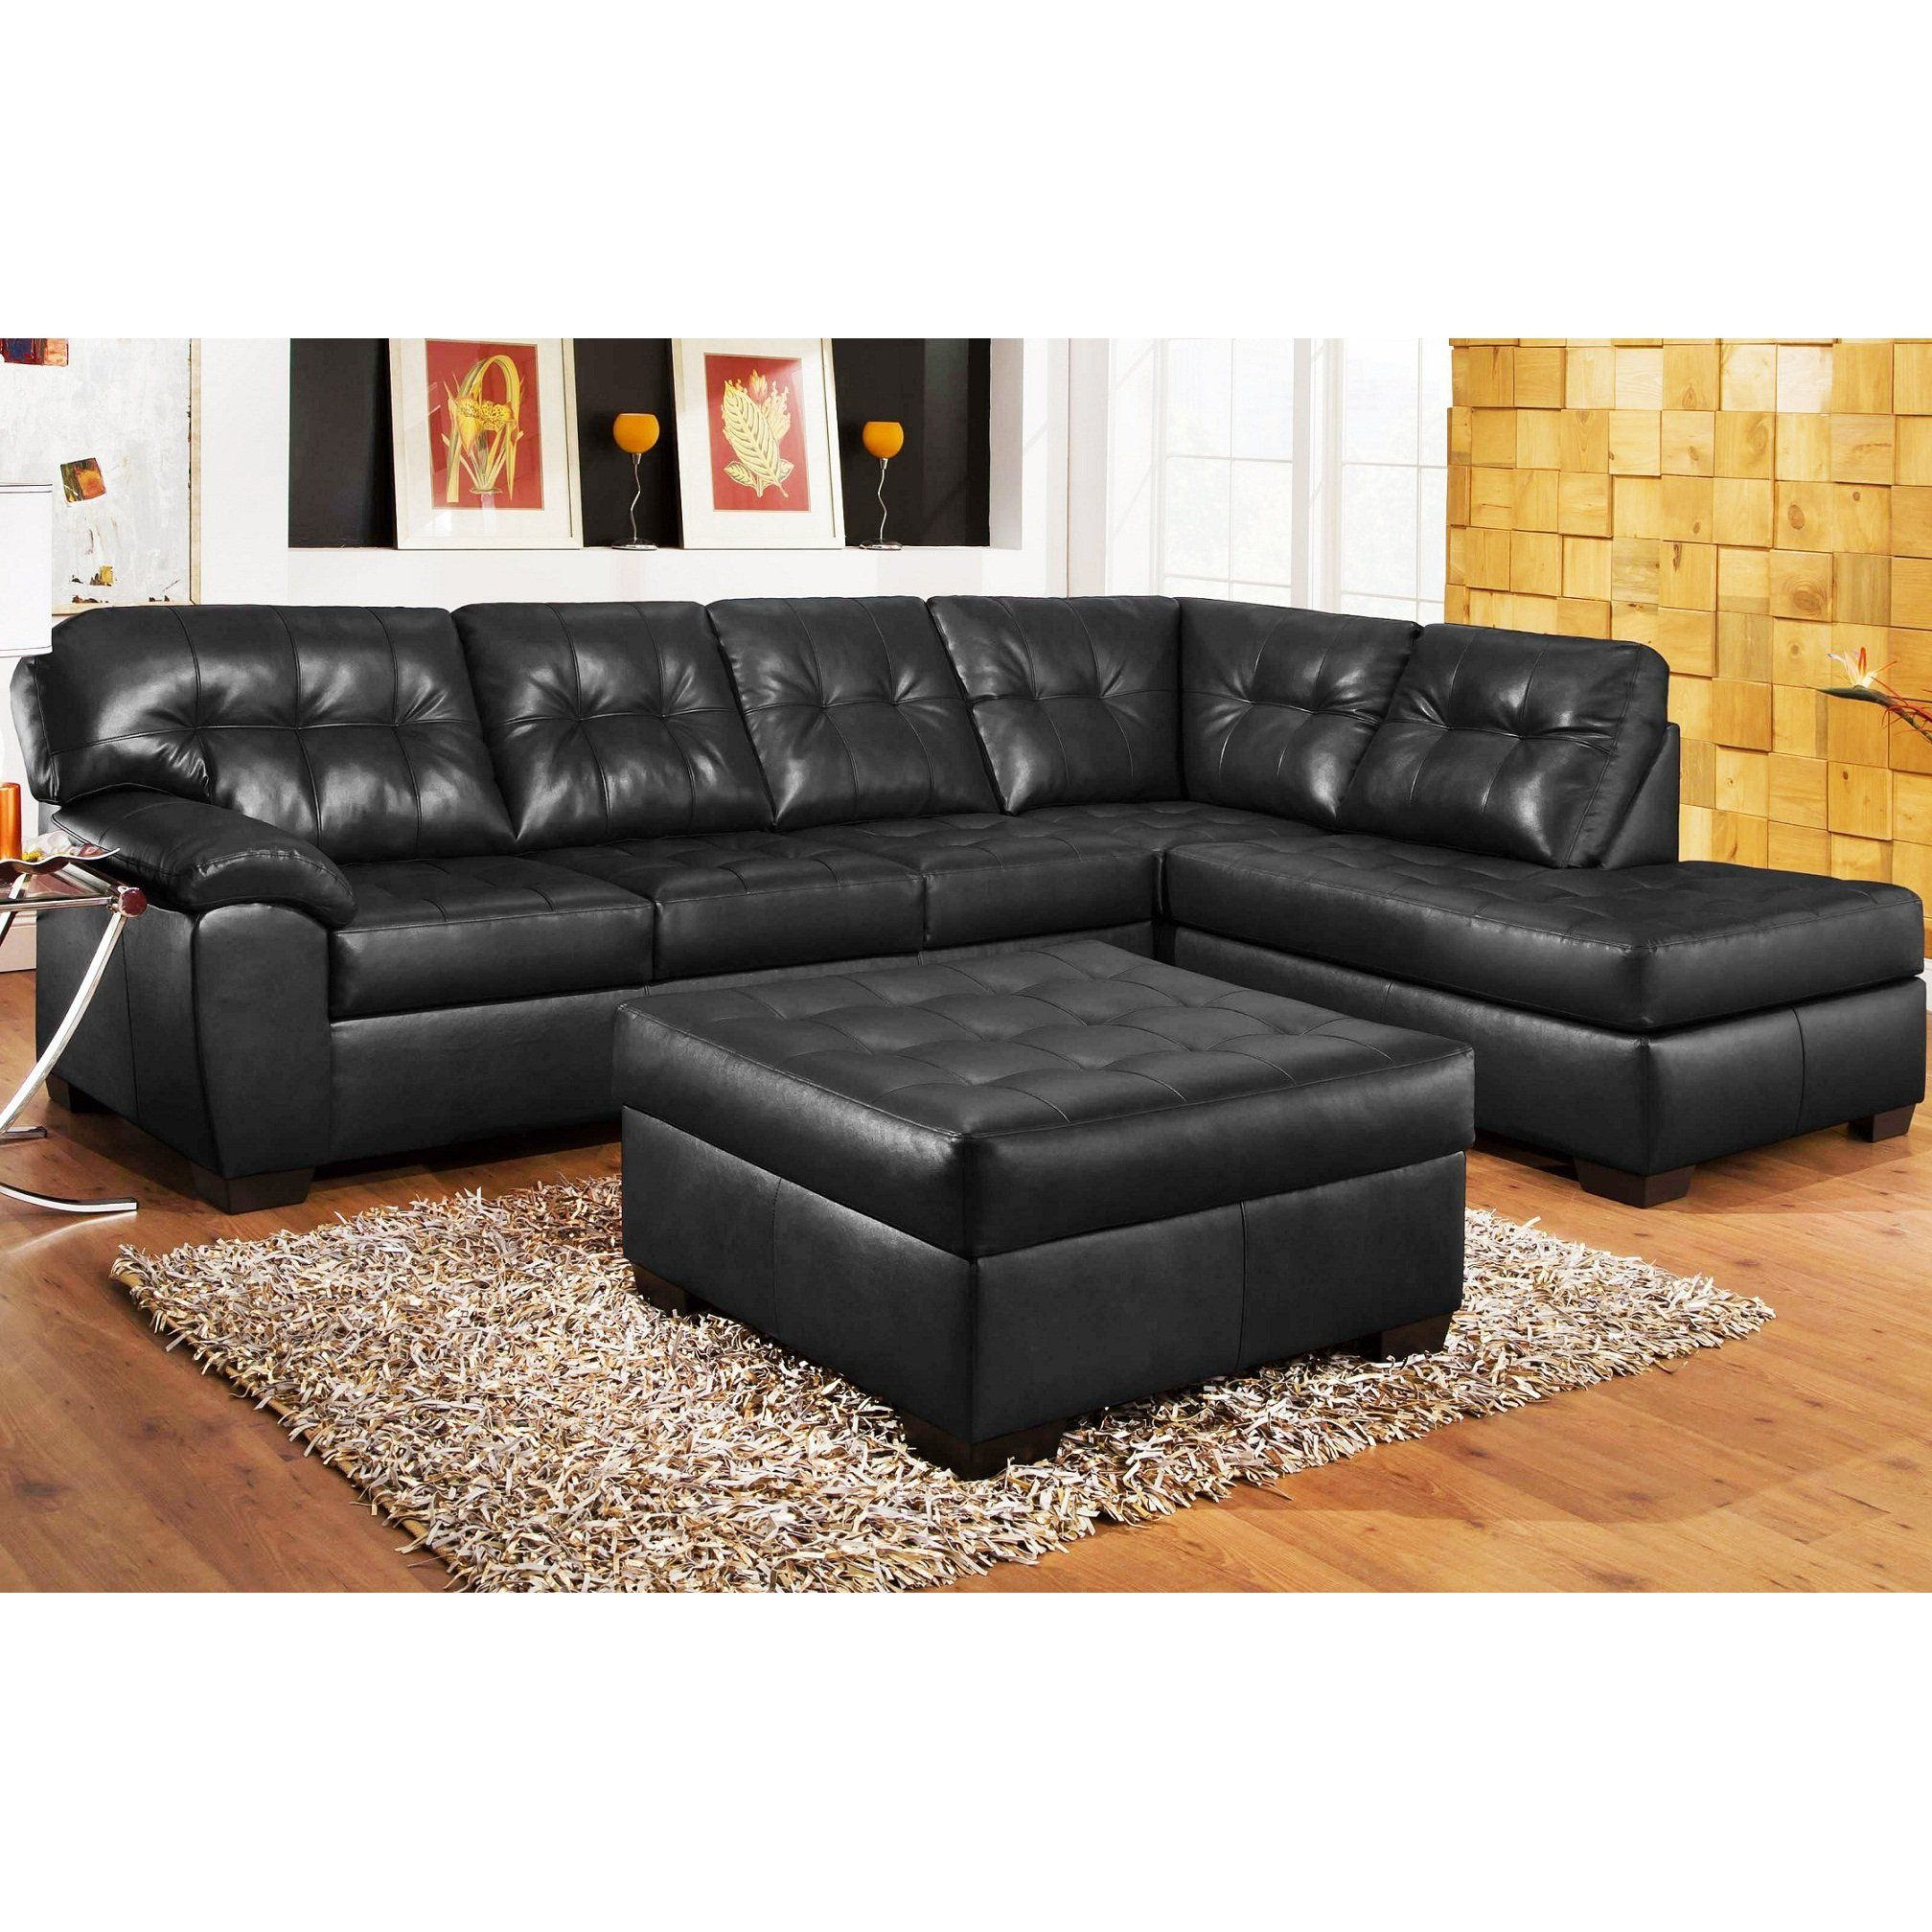 3pc black leather sectional sofa